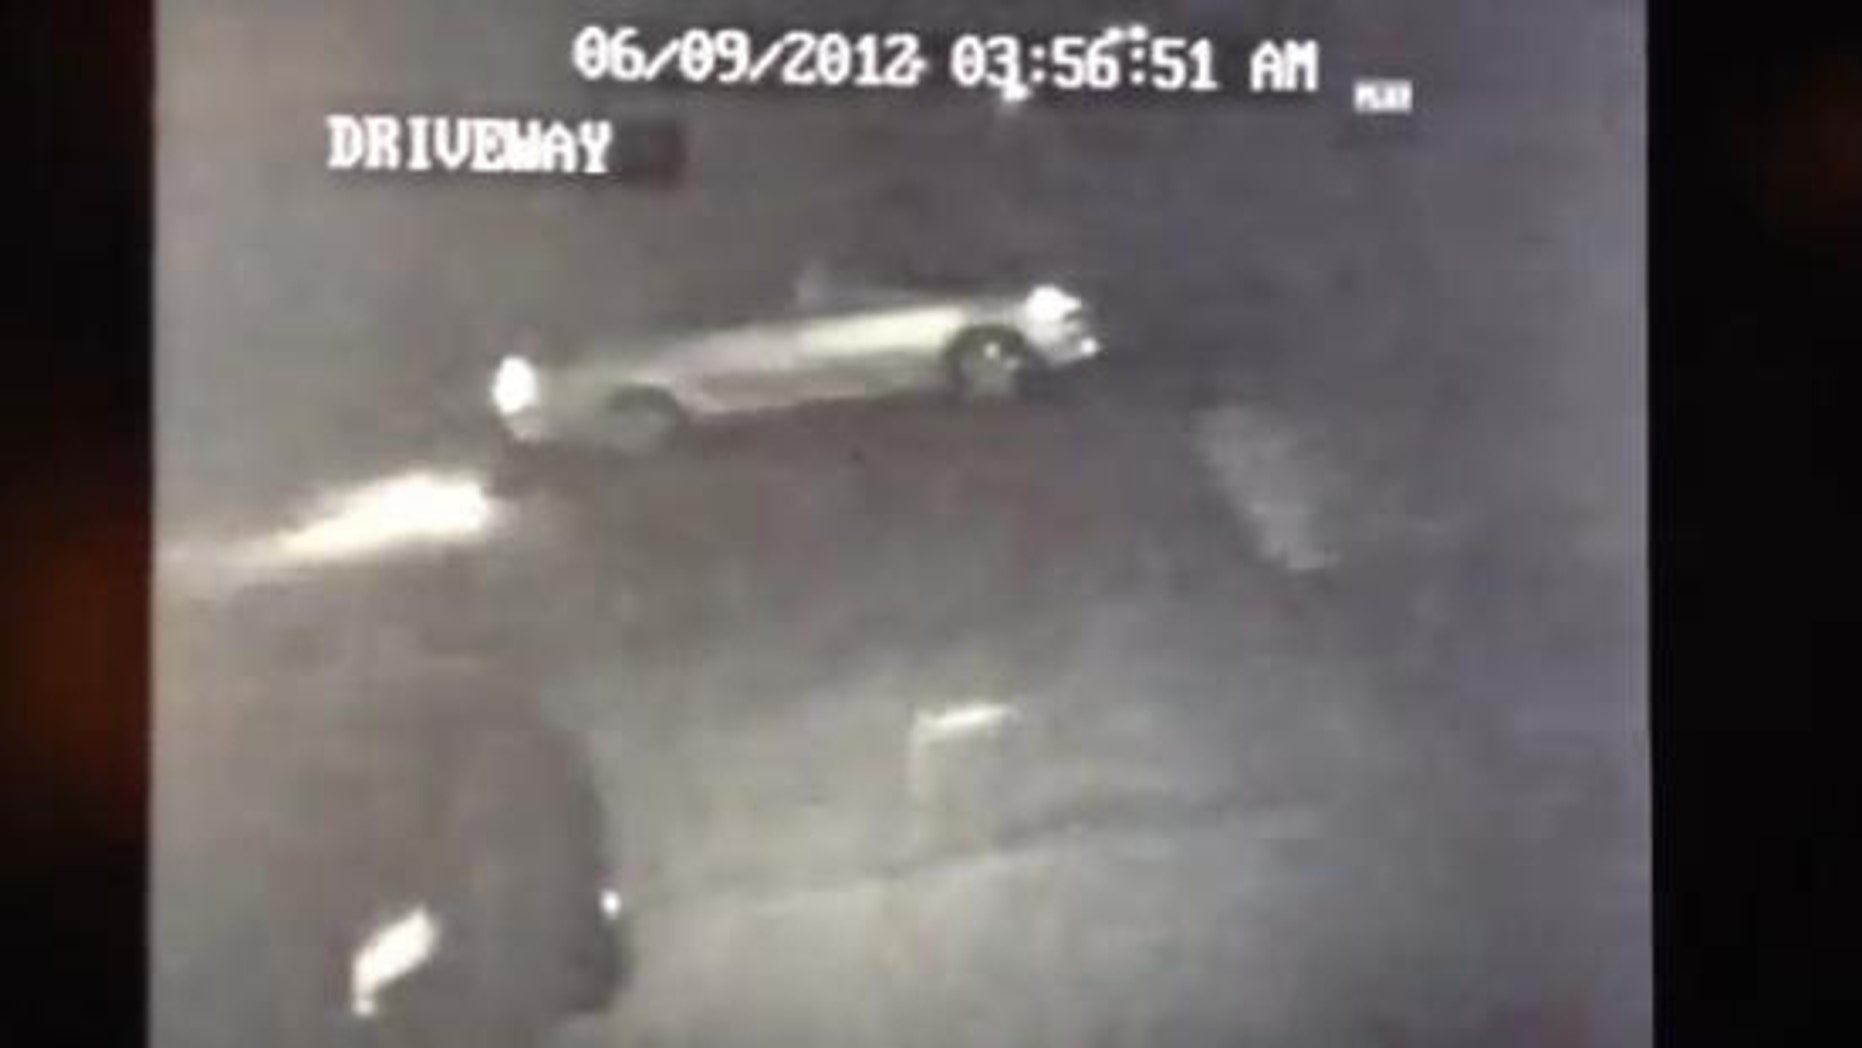 June 09, 2012: Lathrop., Calif., resident Steve Nelson posted this video on YouTube, recorded by surveillance cameras mounted on his home. He says it shows thieves stealing his car.